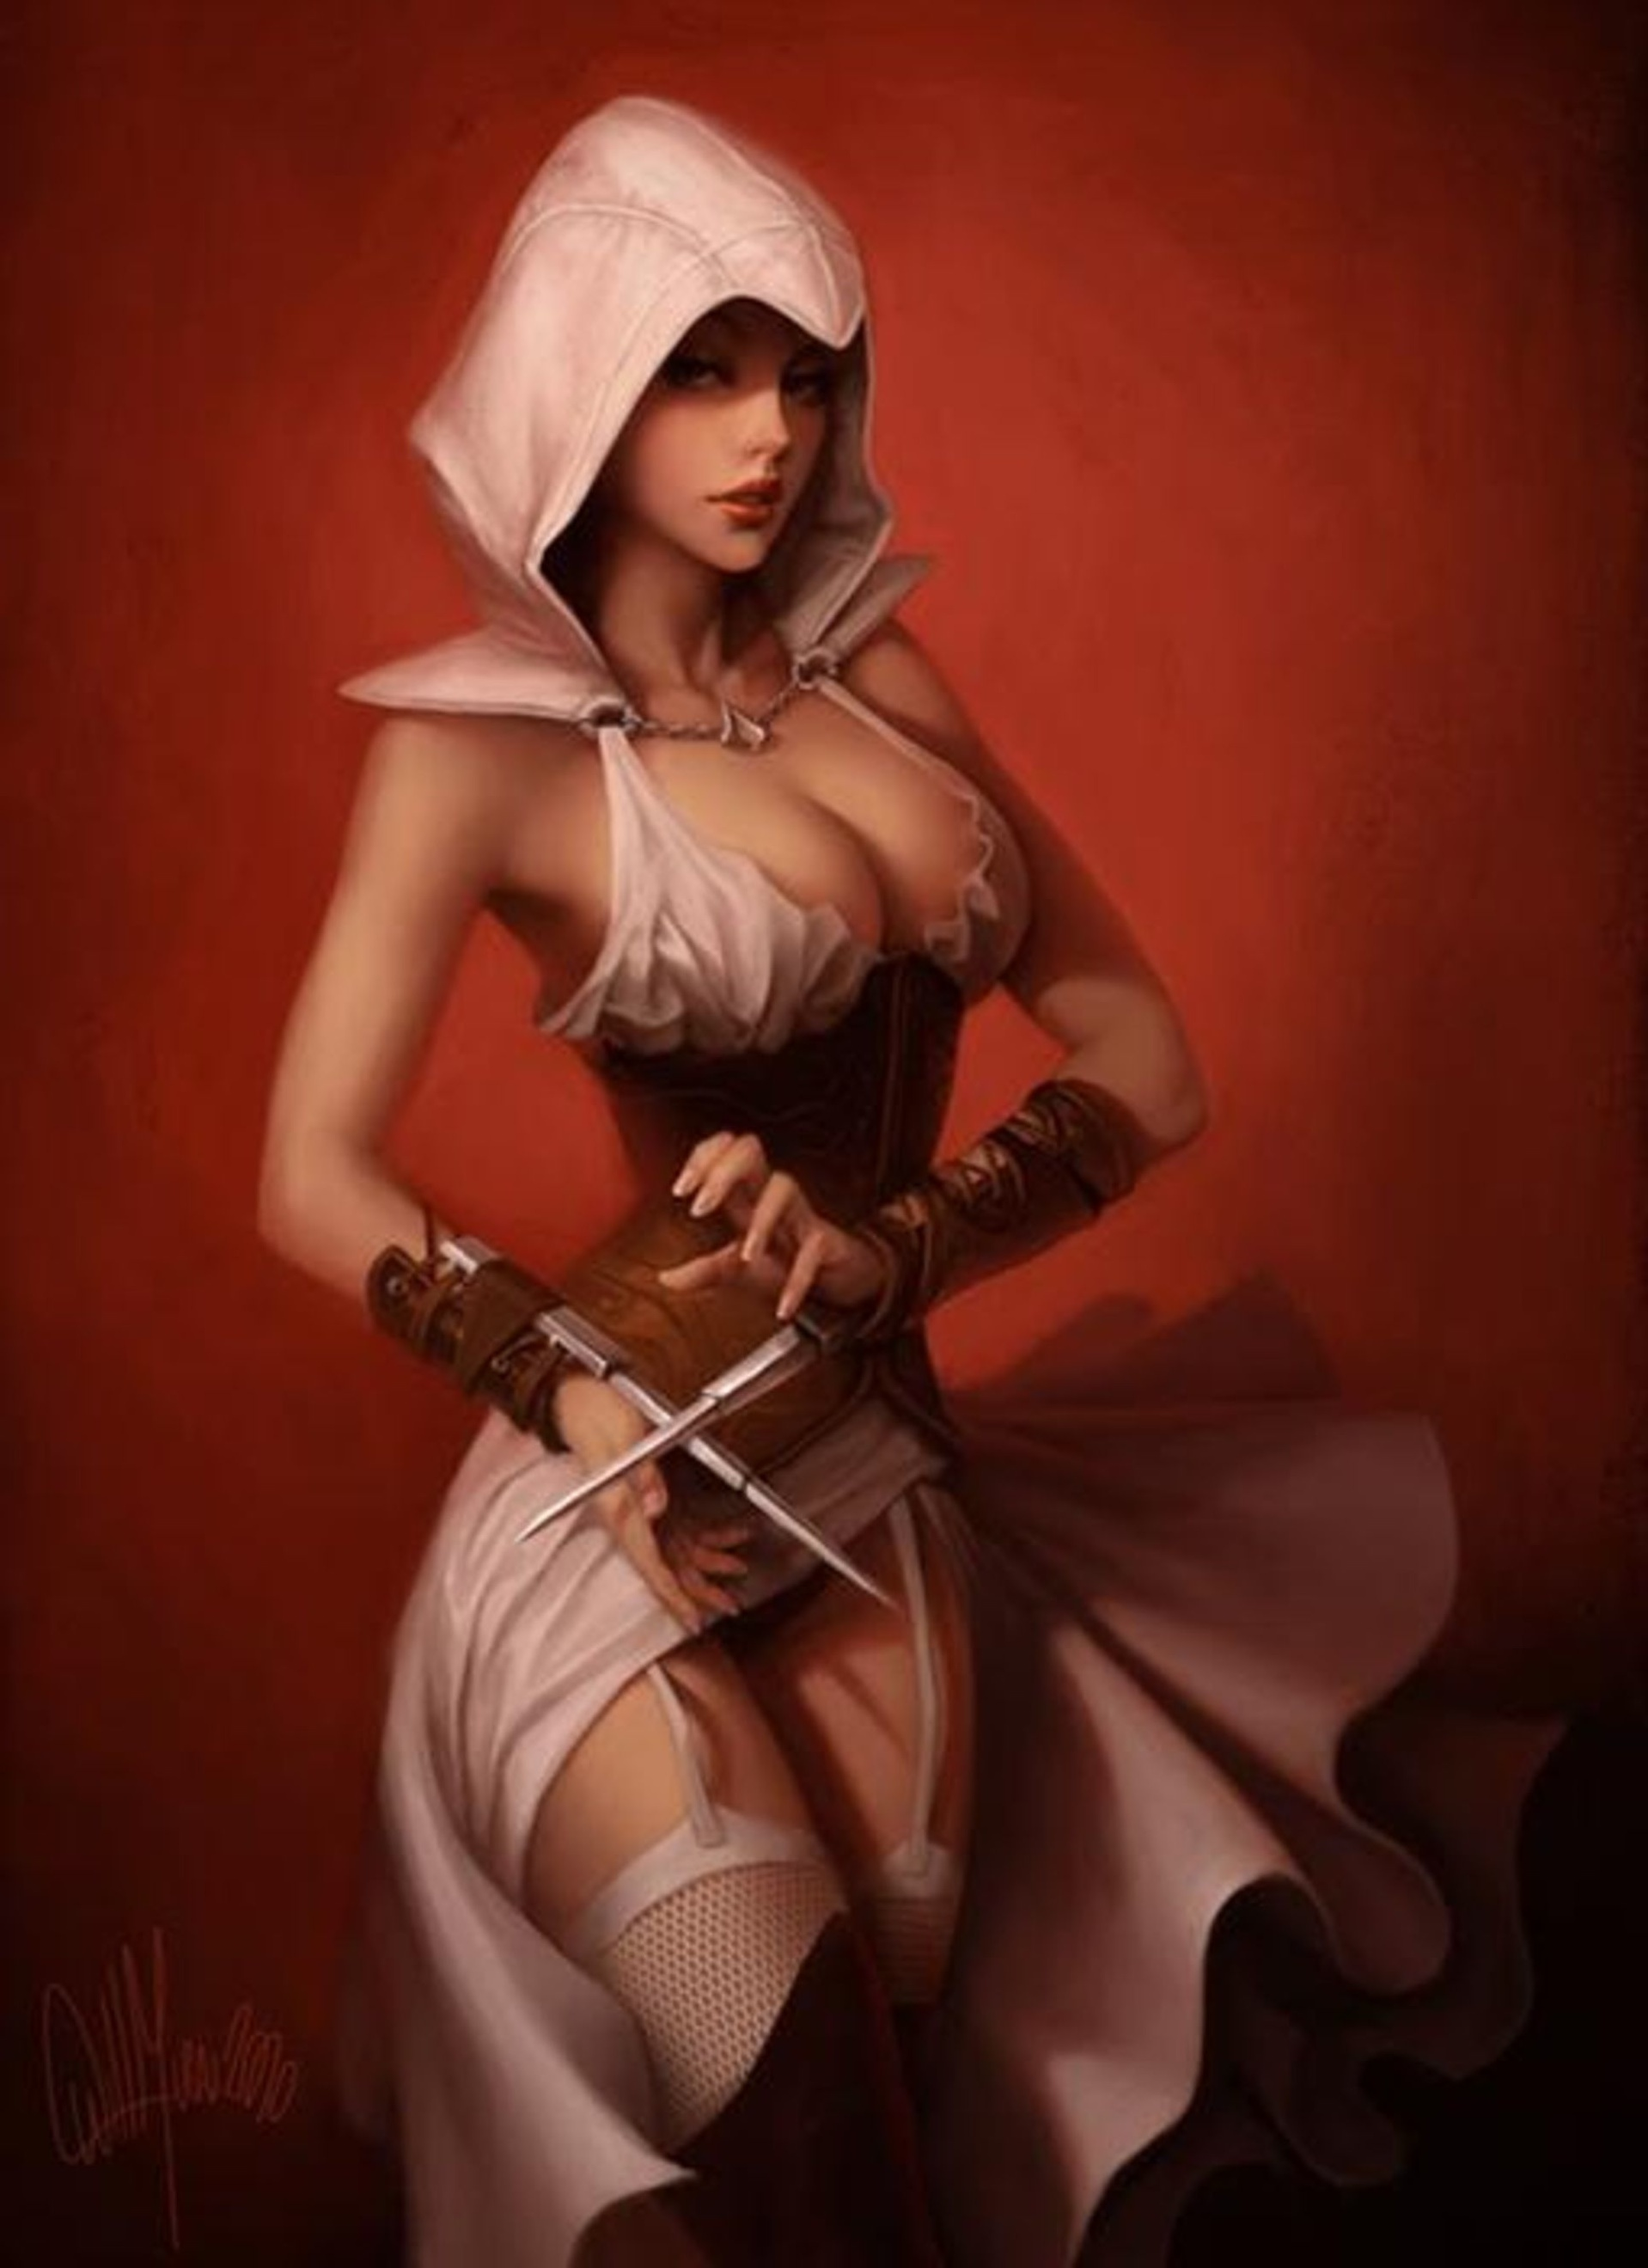 Assassin's creed naked girl pron photos